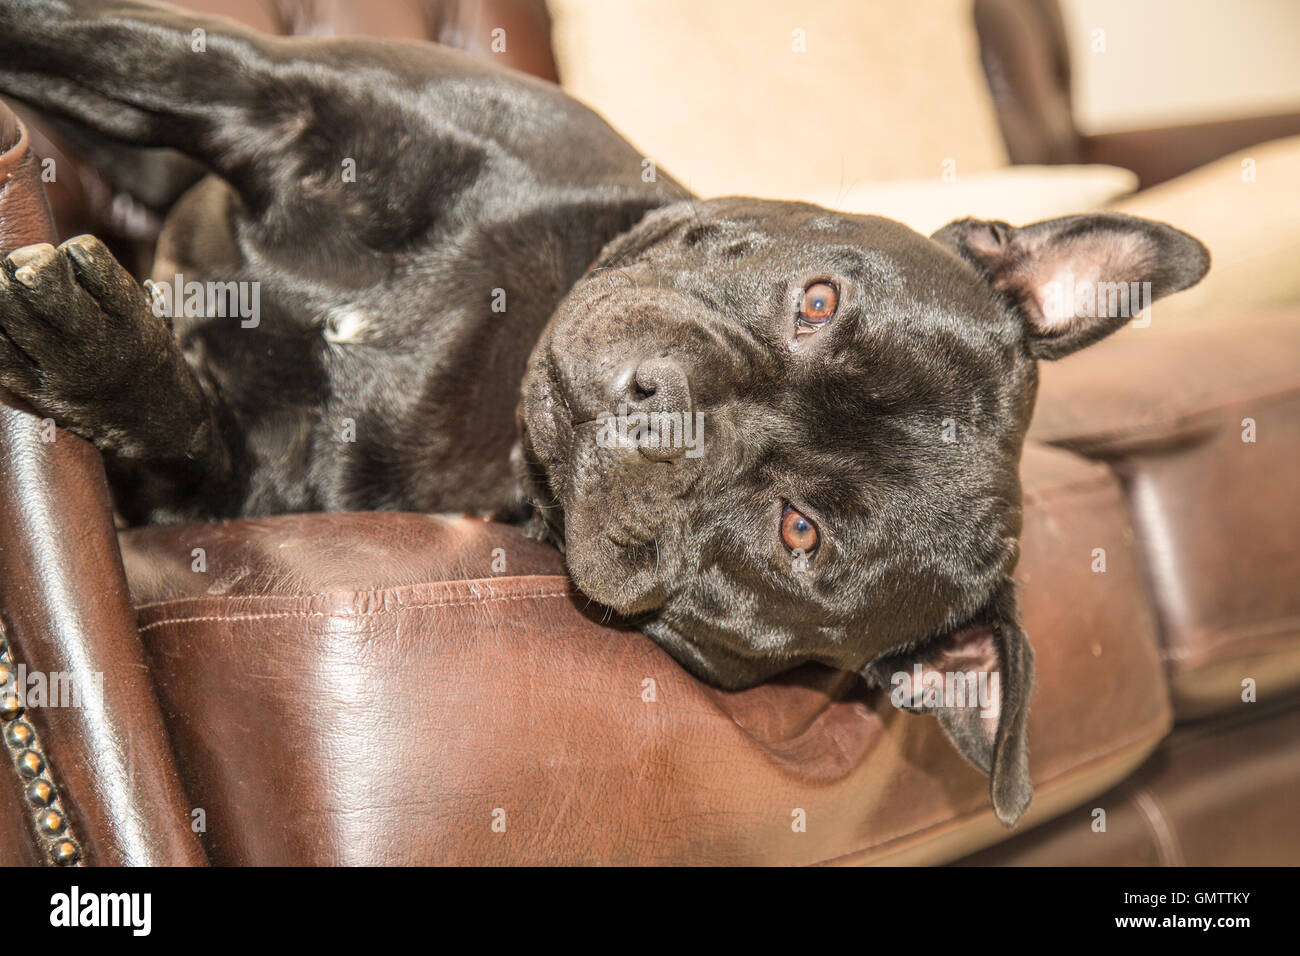 Black Staffordshire Bull Terrier dog lying on a brown leather sofa, couch, with his head hanging off the side. He - Stock Image